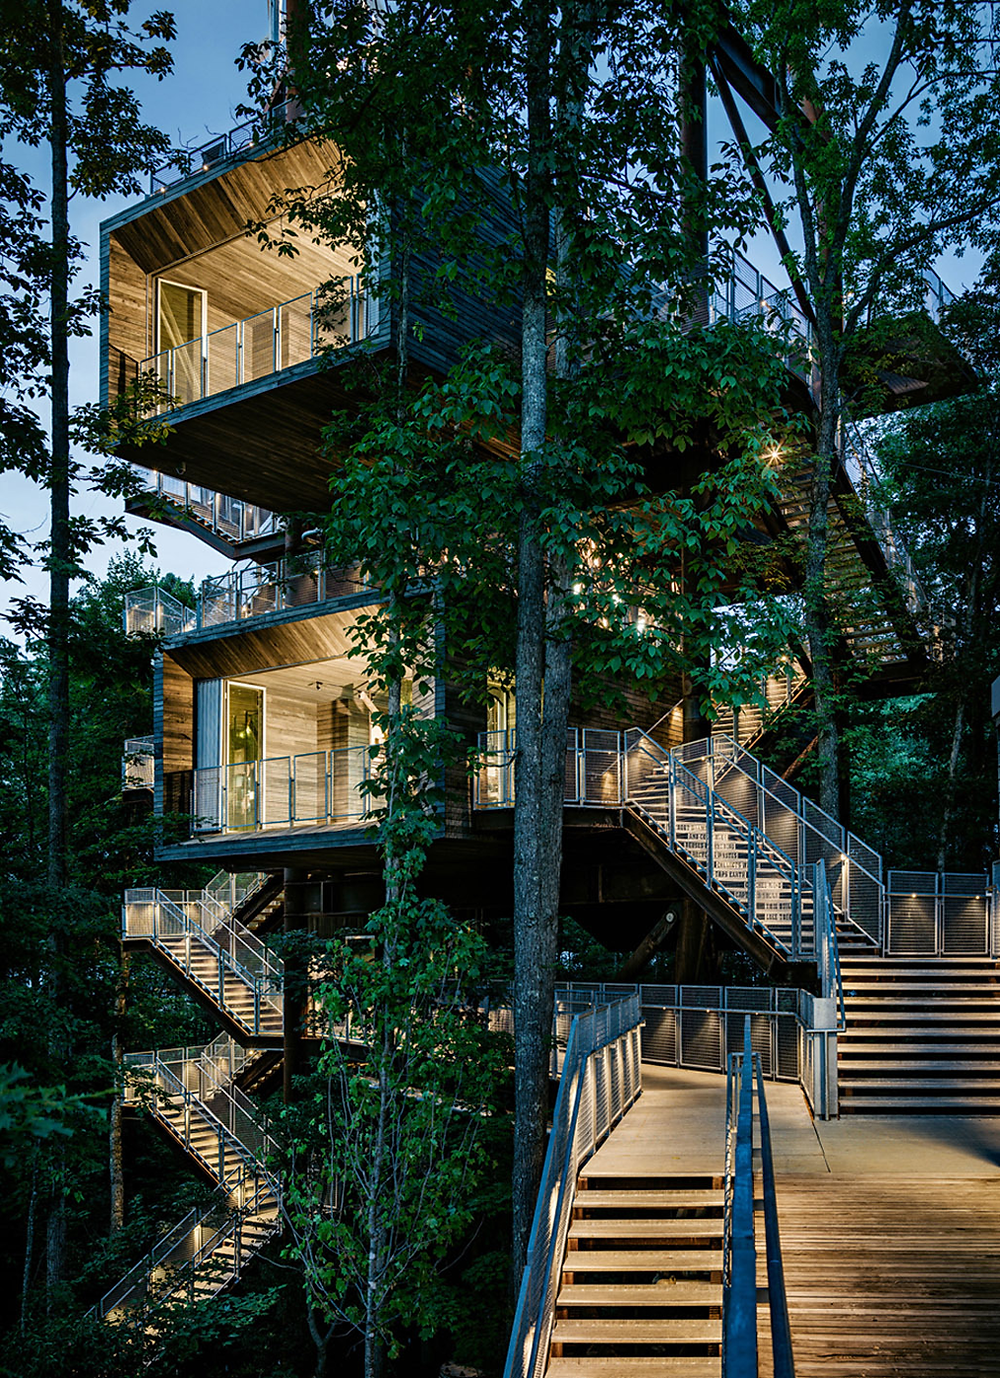 Sustainability Treehouse at the Summit Bechtel Reserve